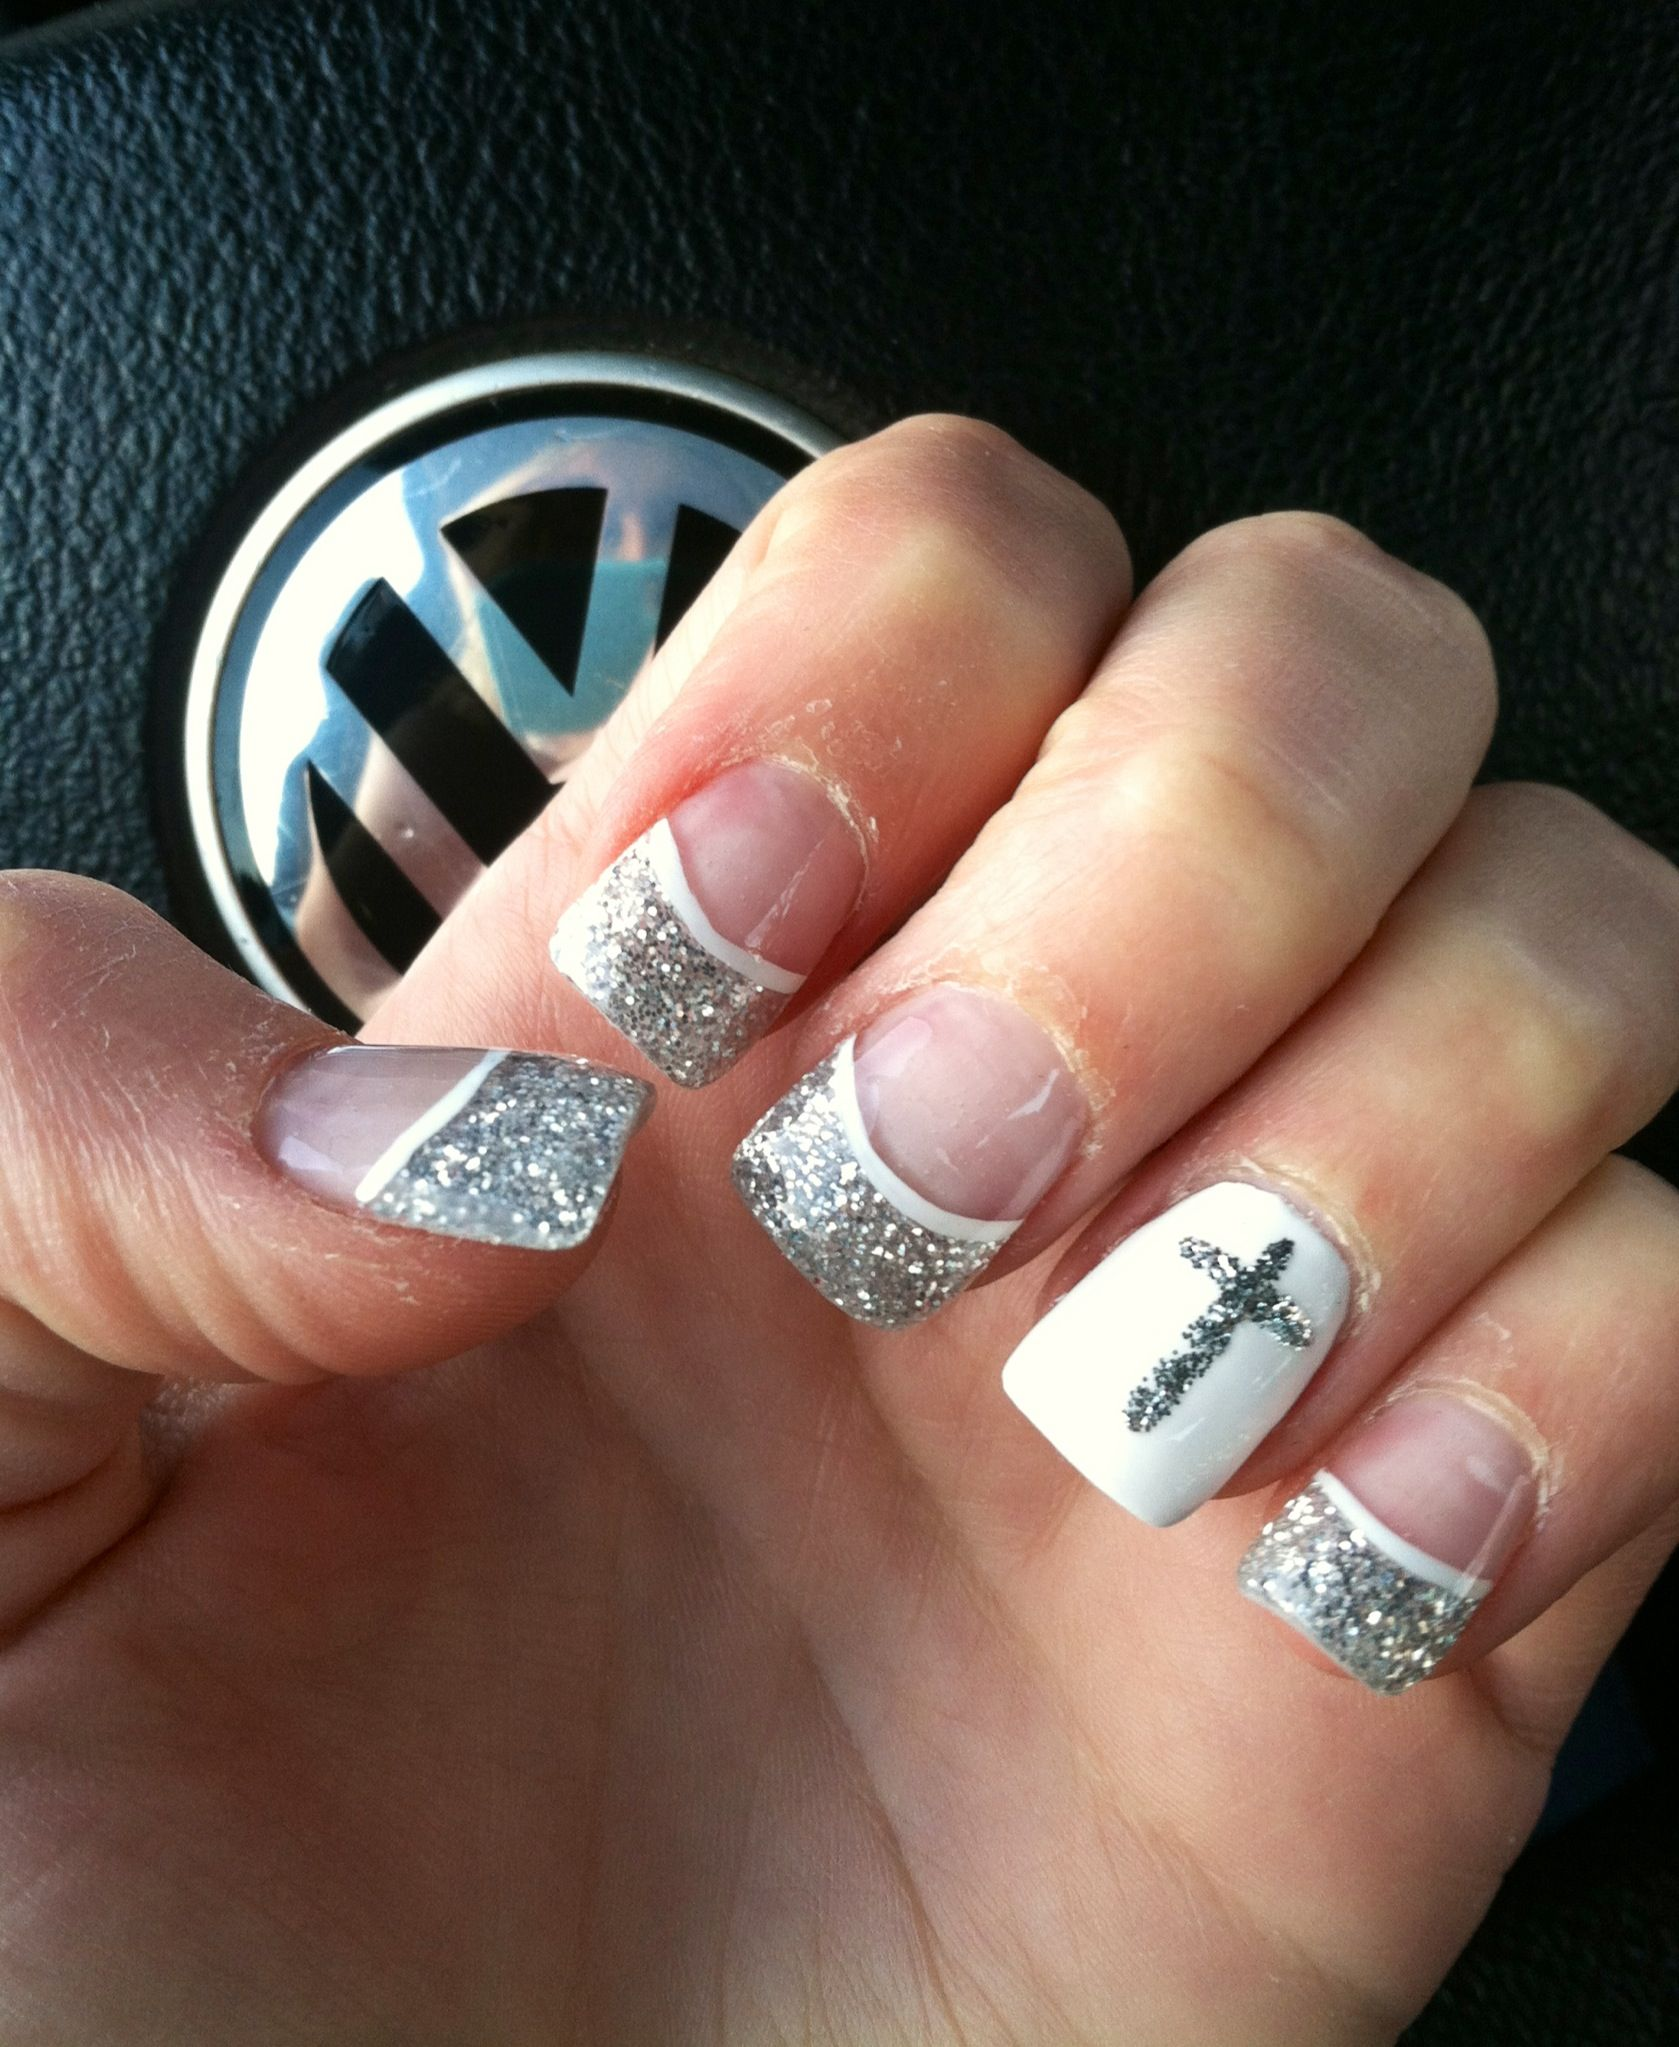 Silver Sparkle Tip Nails With Cross On Ring Finger Adorbs